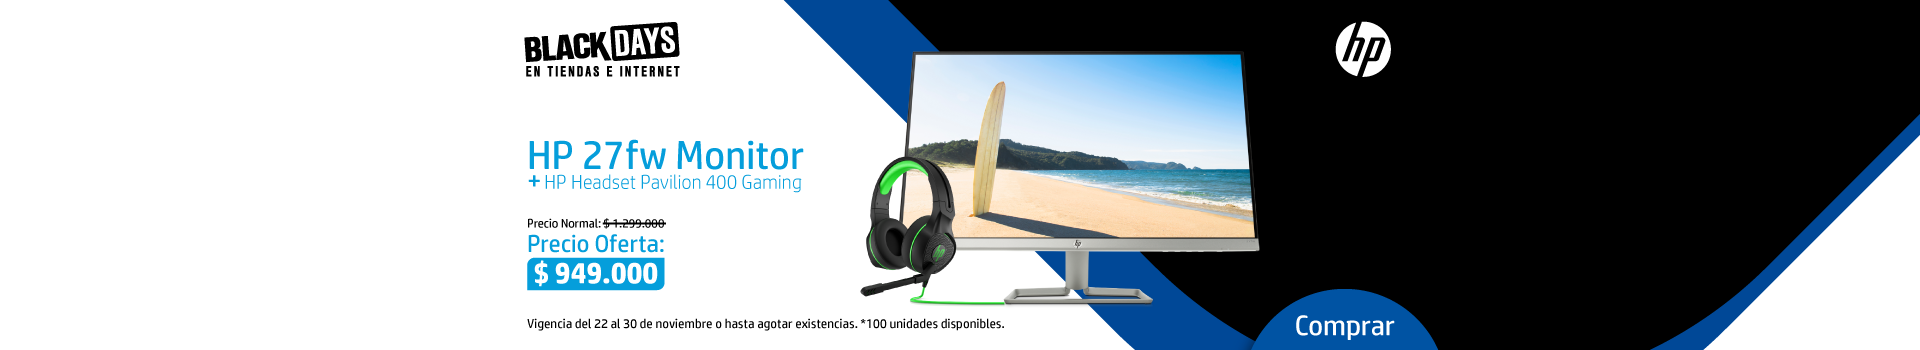 Banner-Monitor-27fw-+-Diadema-Gaming---1920-x-350-px